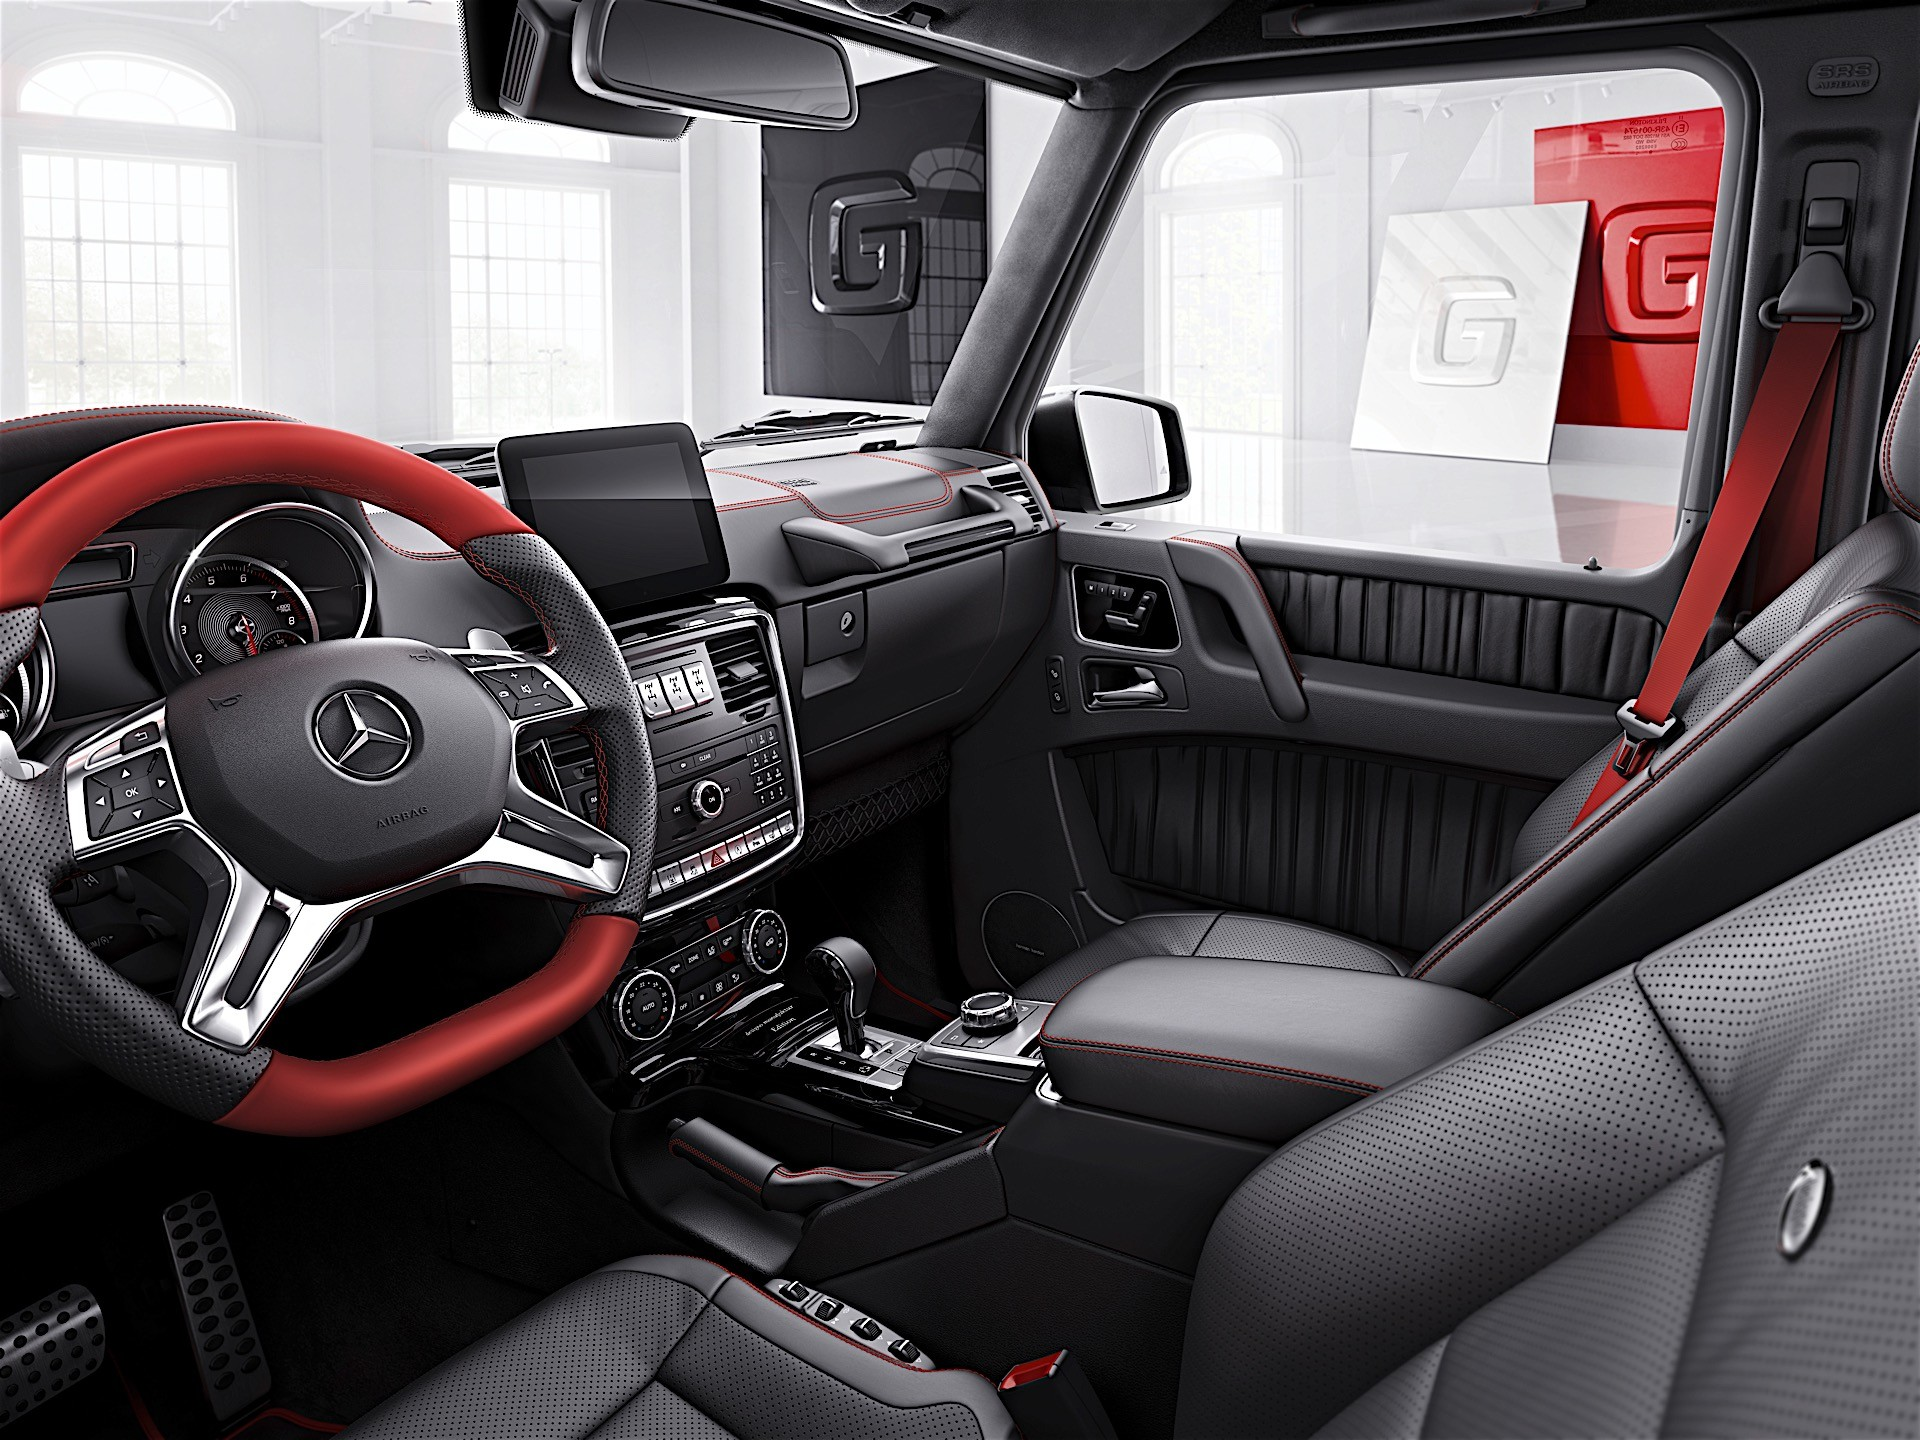 Mercedes Benz Introduces Two Special Edition G Class Models Autoevolution